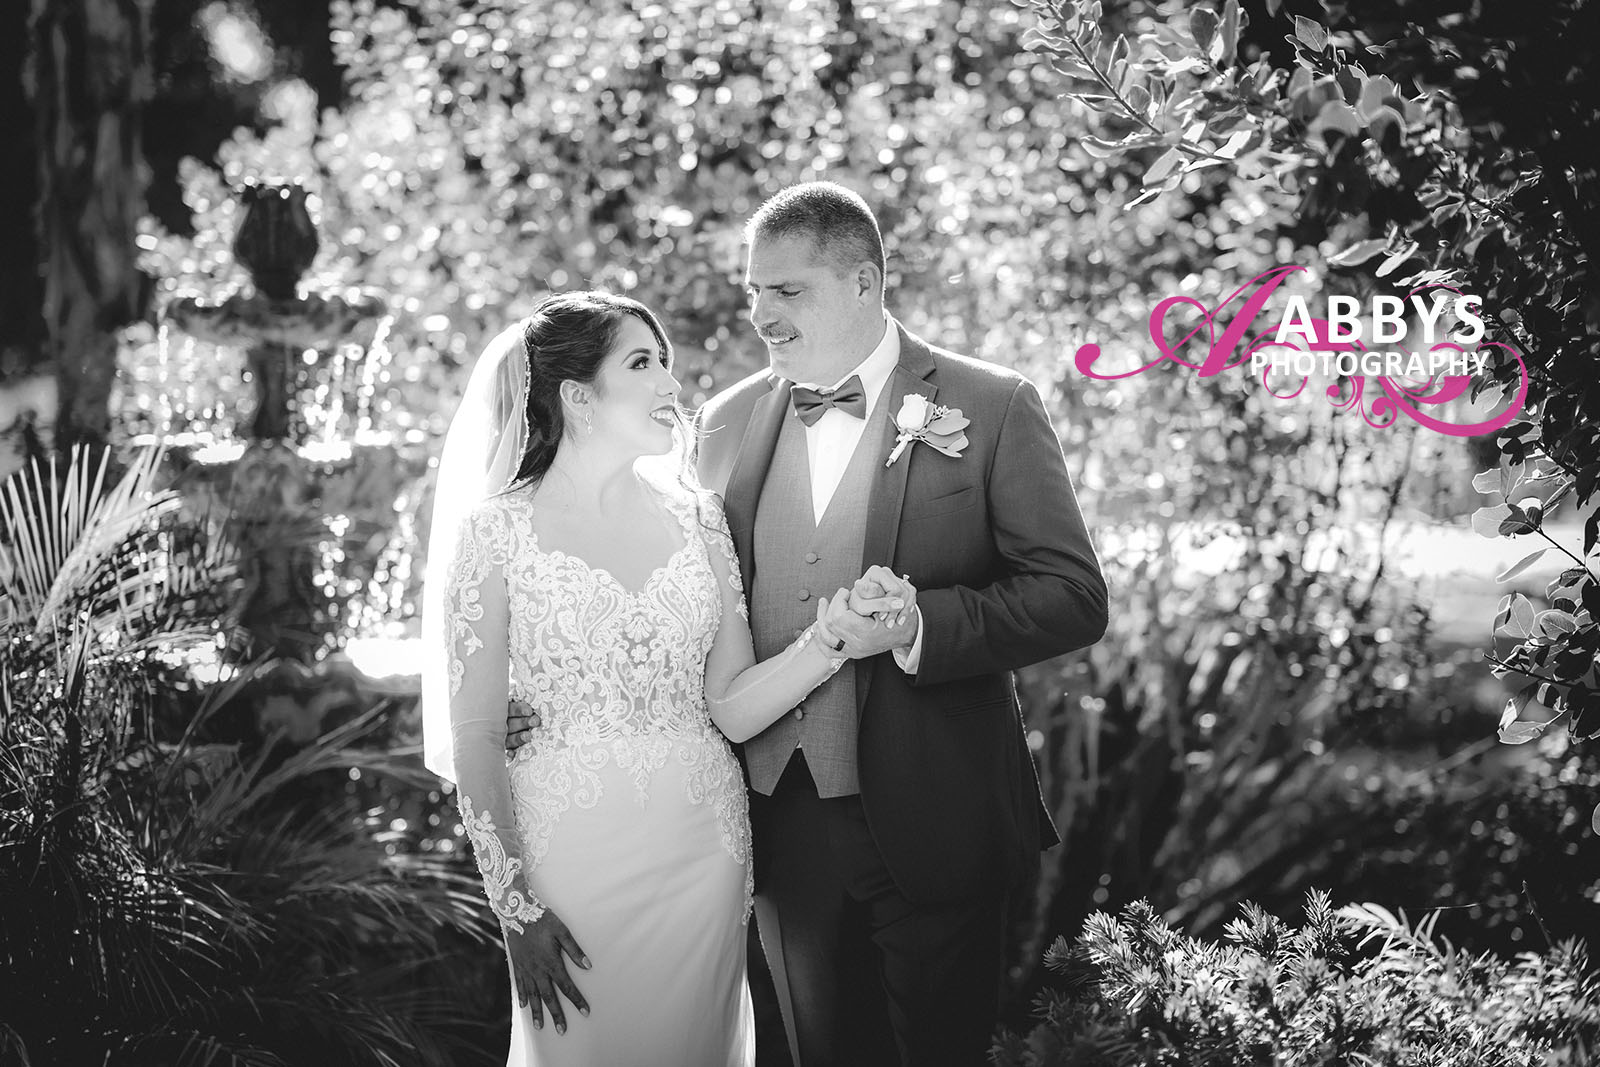 Wedding photography or engagement photography can be just as effective in black and white as in color.